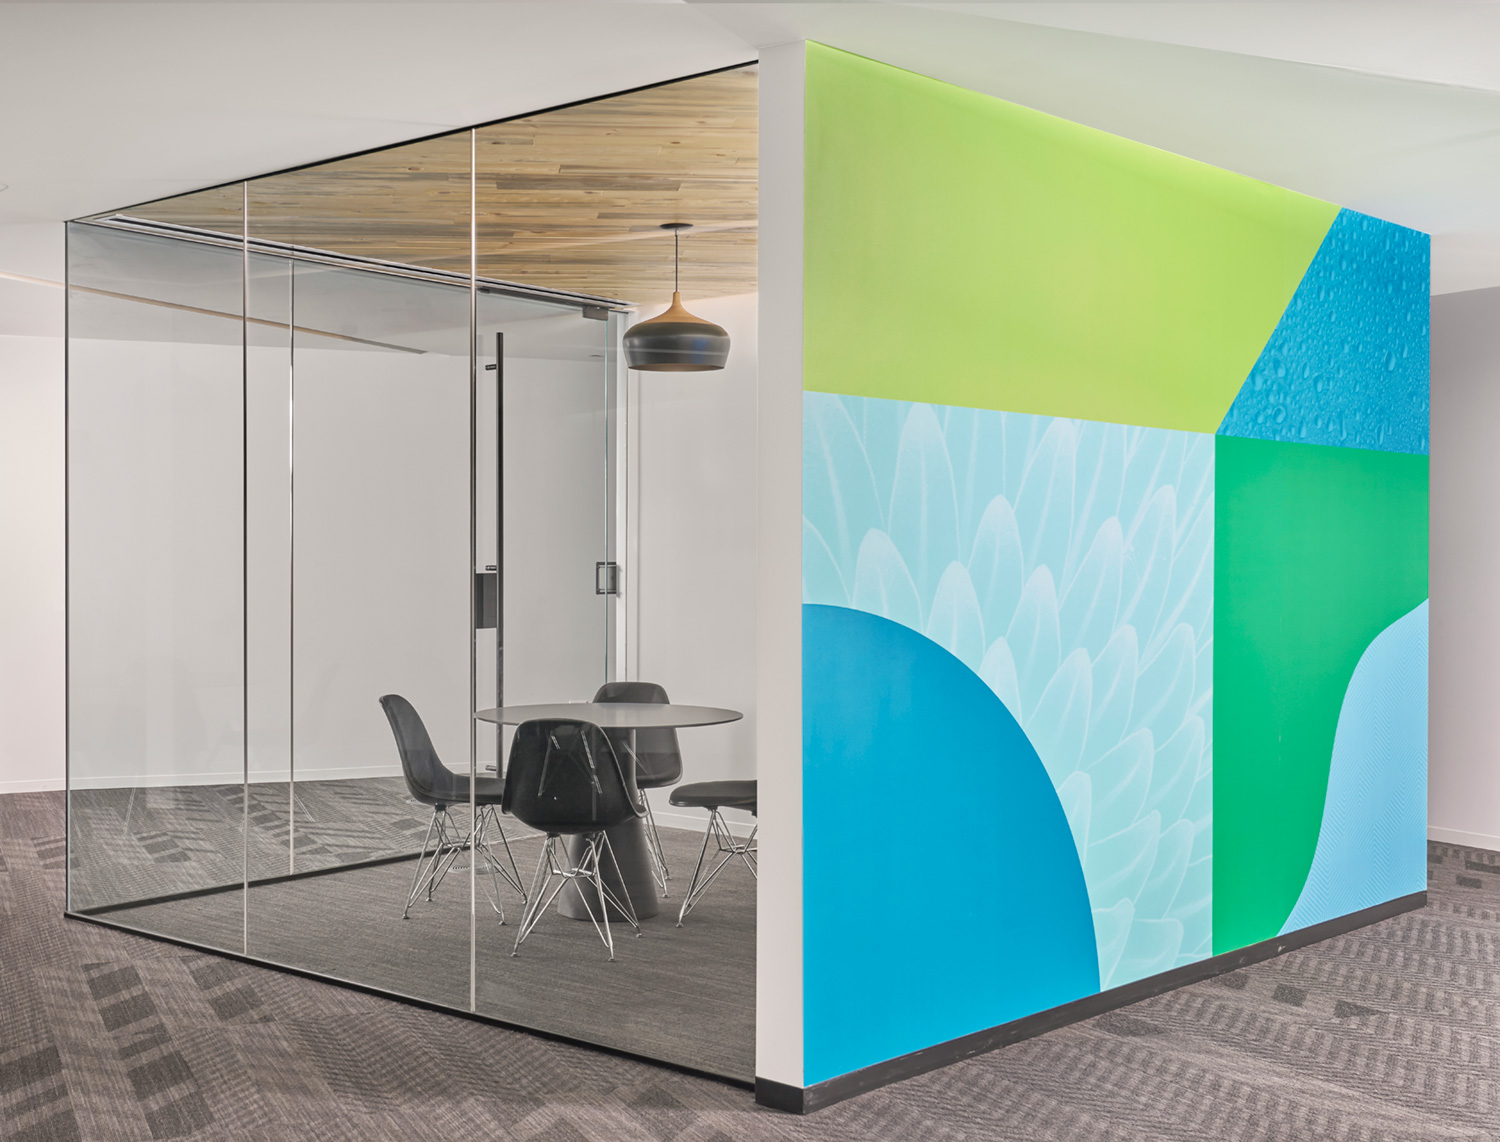 chadkouri-sproutsocial-mural-office